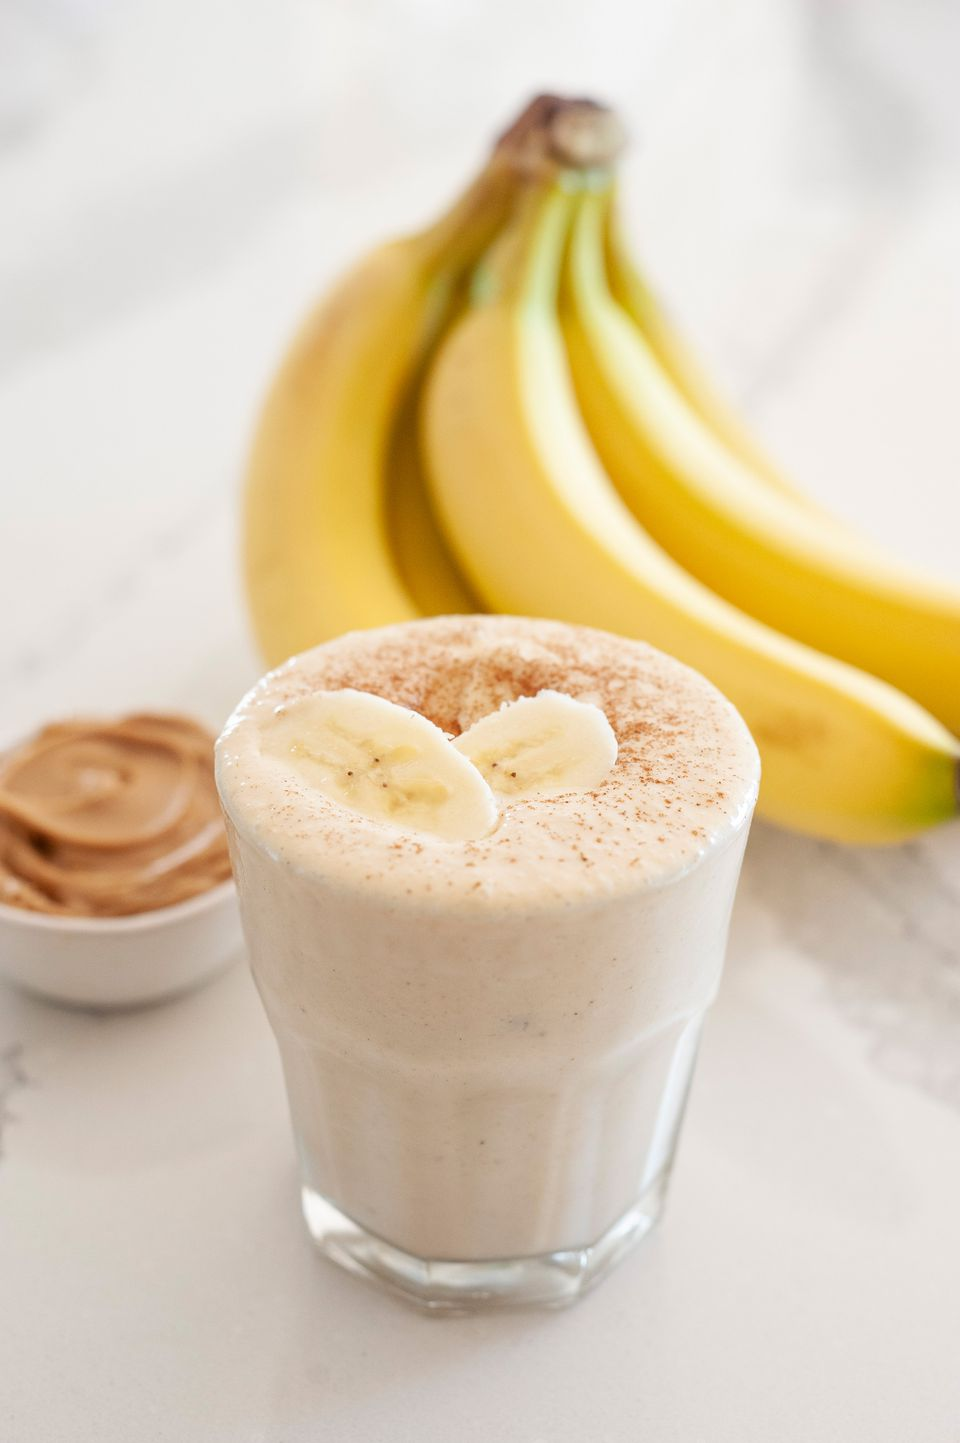 Simple peanut butter banana smoothie topped with sliced bananas and a bunch of bananas and a small container of peanut butter behind it.